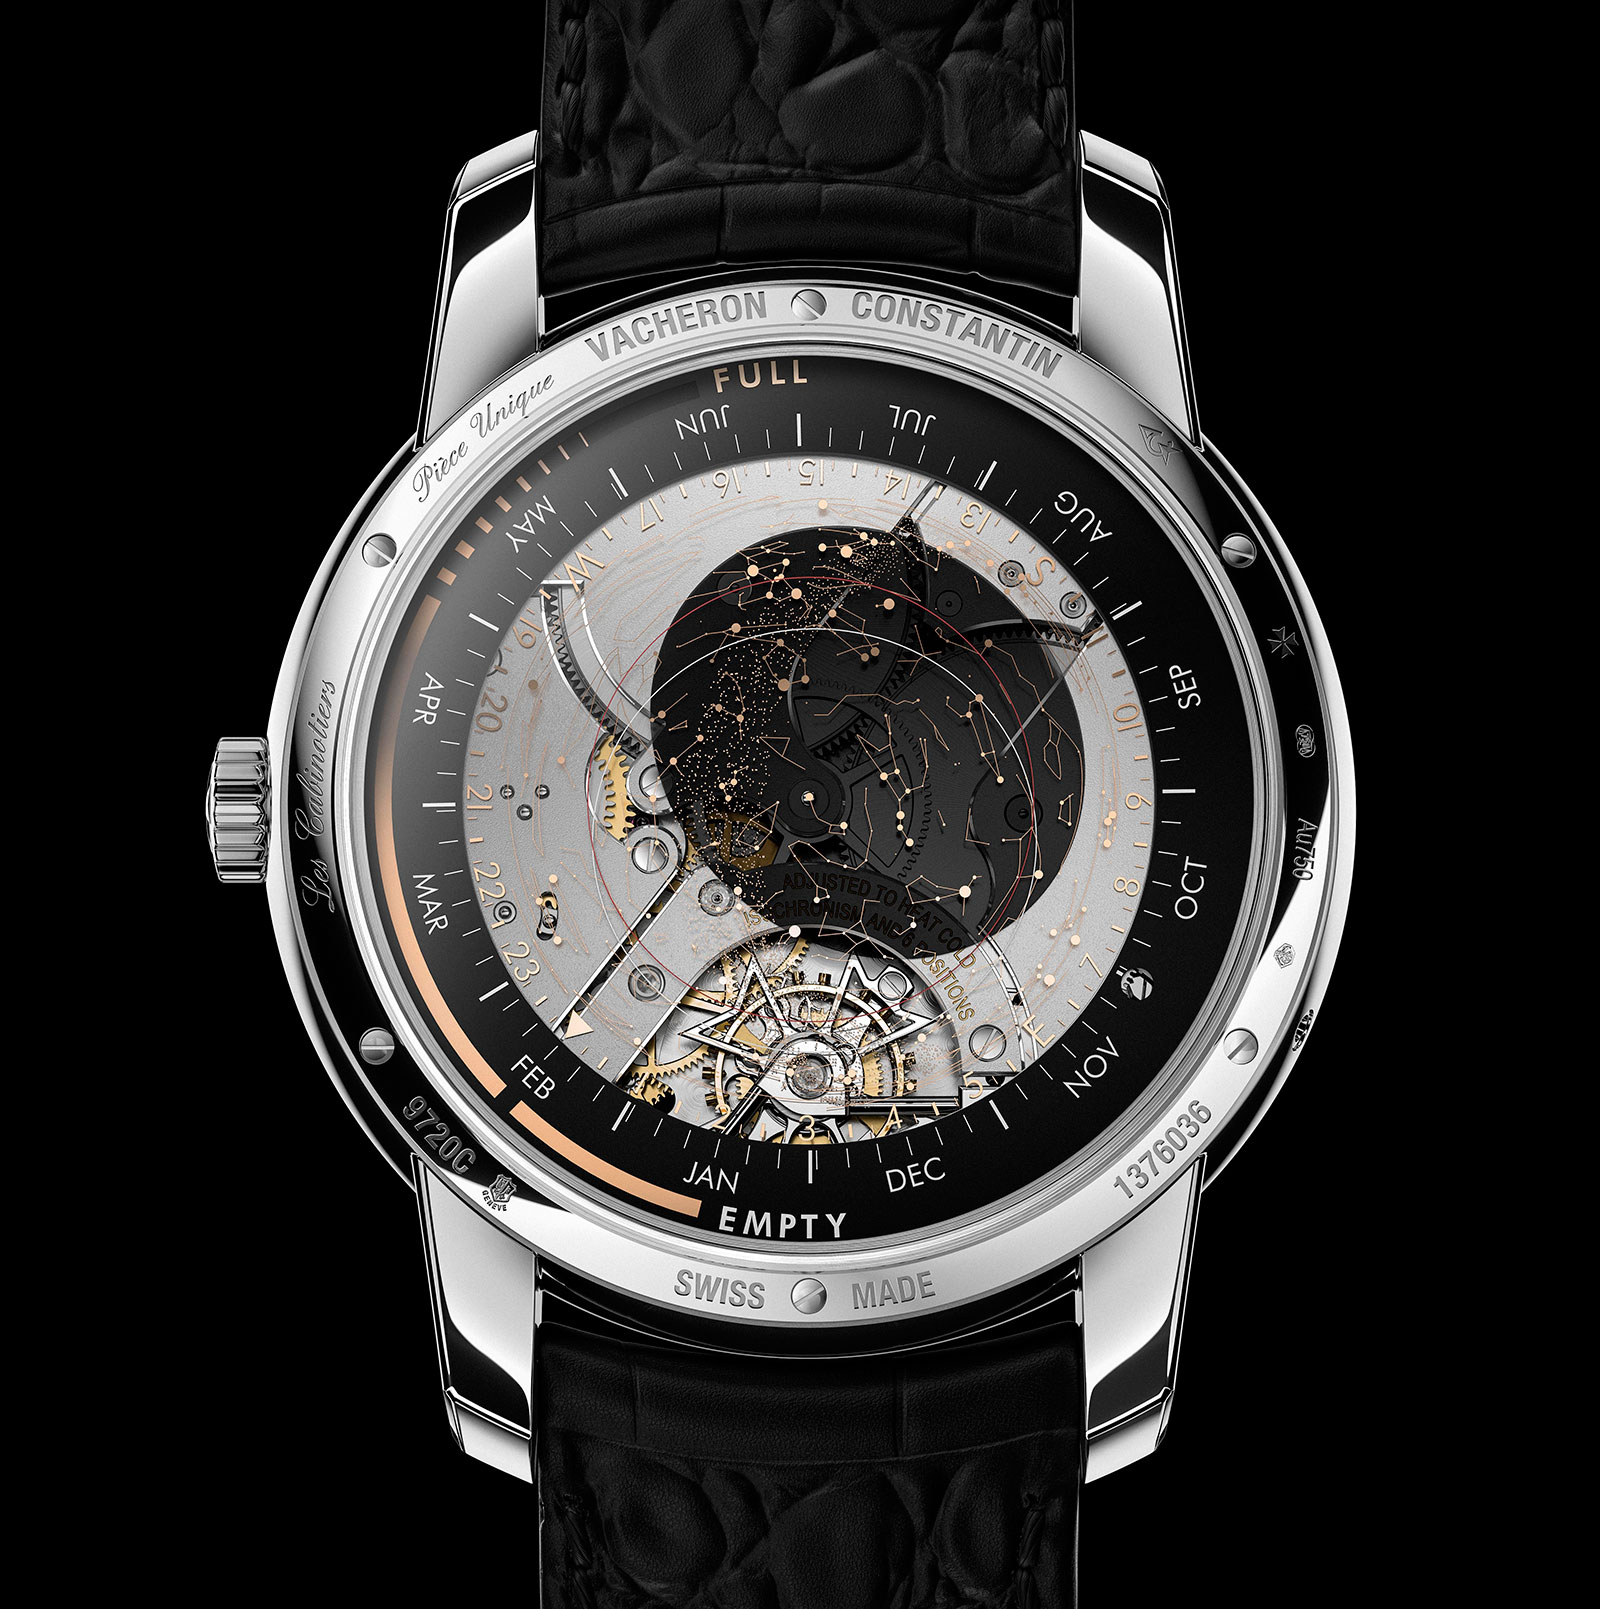 Vacheron-Constantin-Celestia-Astronomical-Grand-Complication-3600-8.jpg